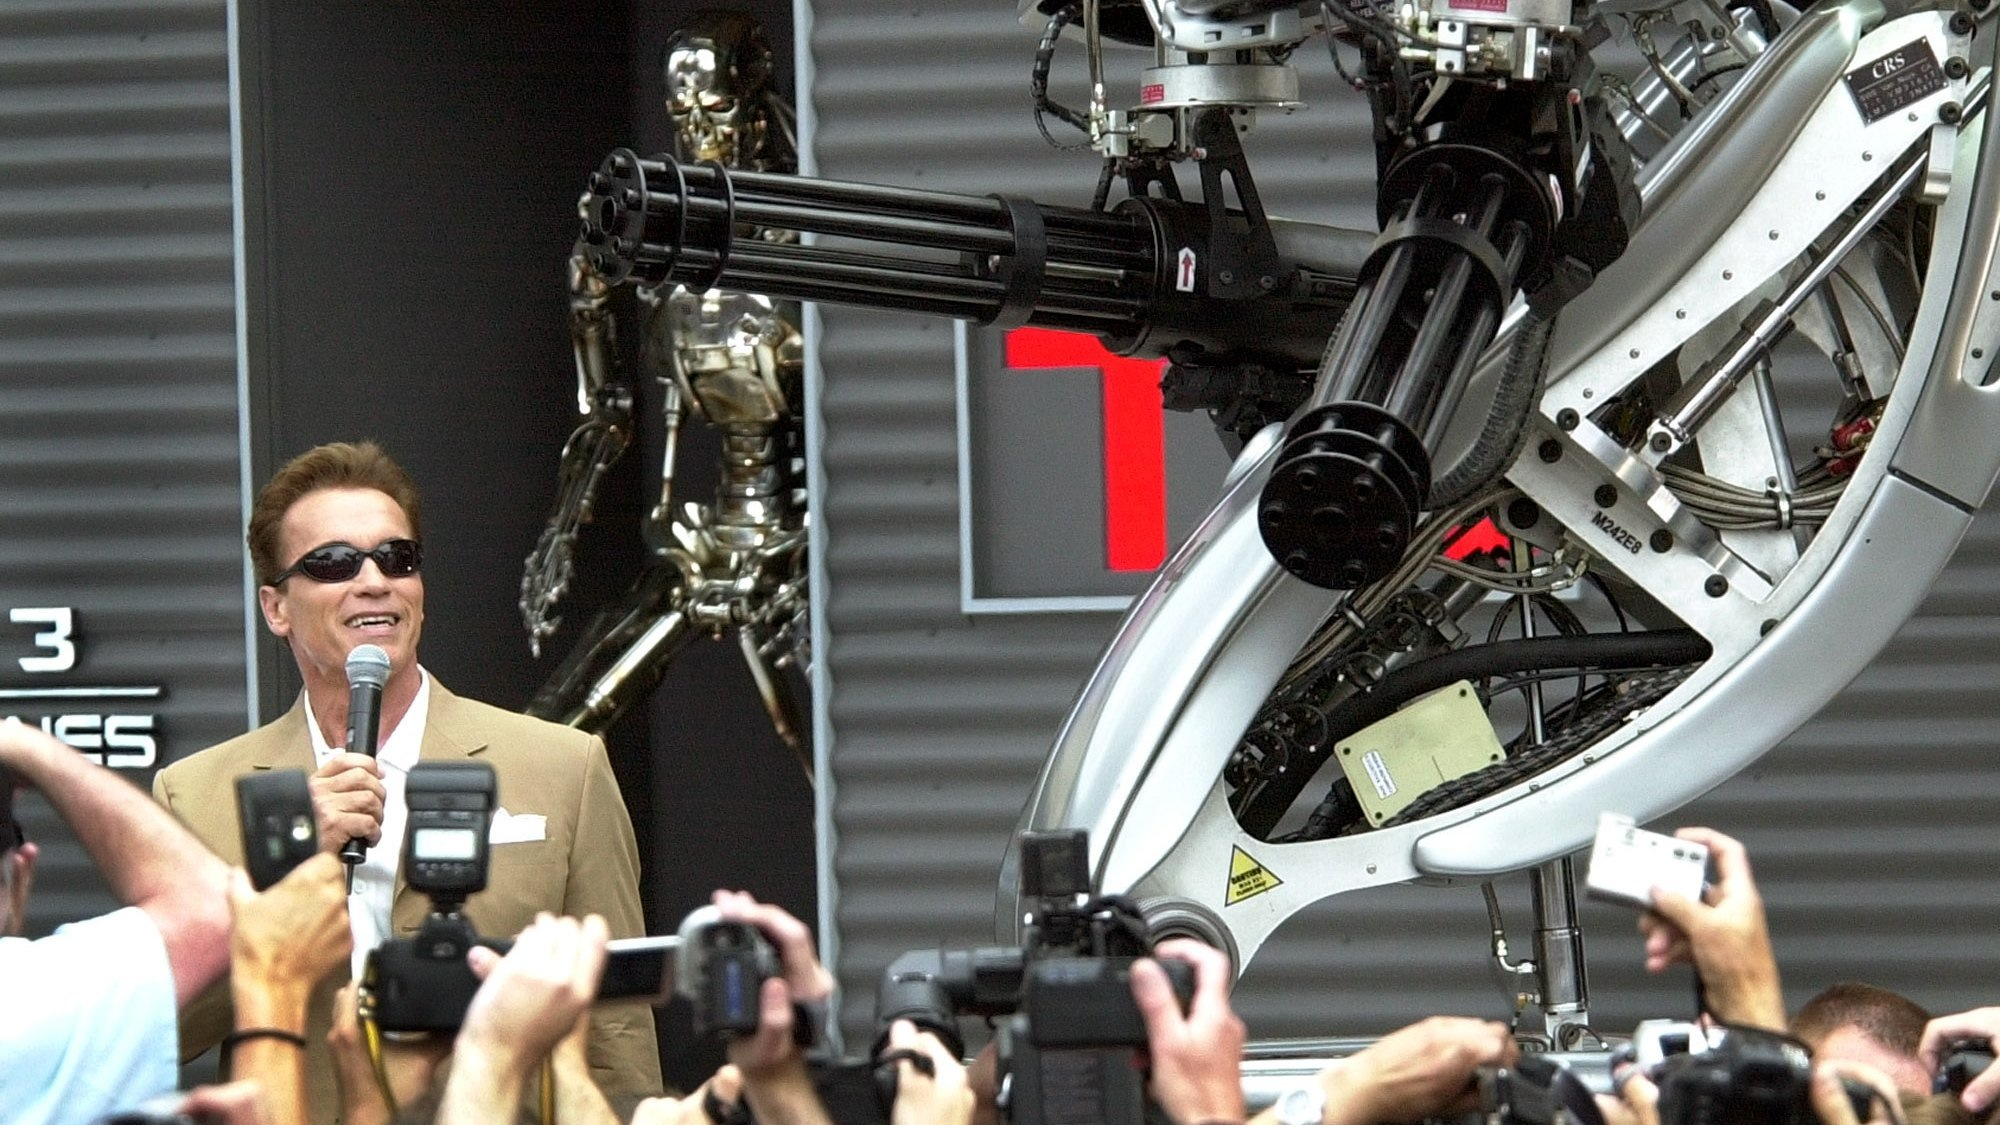 """Arnold Schwarzenegger, poses next to a robot for the promotion of his new film """"Terminator 3,""""directed by American Jonathan Mostow, on the sideline of the 56th Film Festival in Cannes, France, Saturday, May 17, 2003. (AP Photo/Patrick Gardin)"""